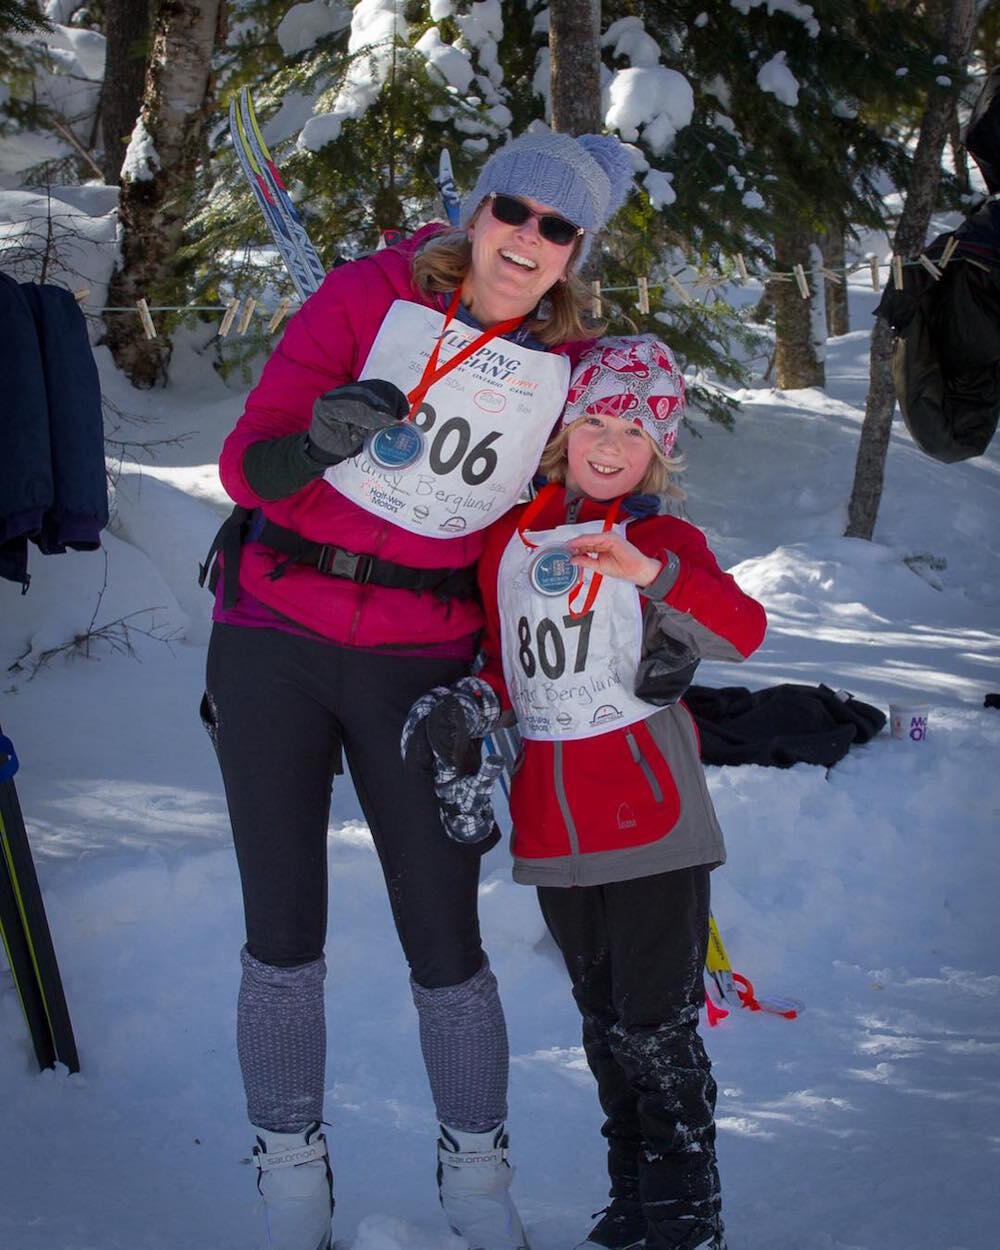 Woman and child showing metals from x-c ski race